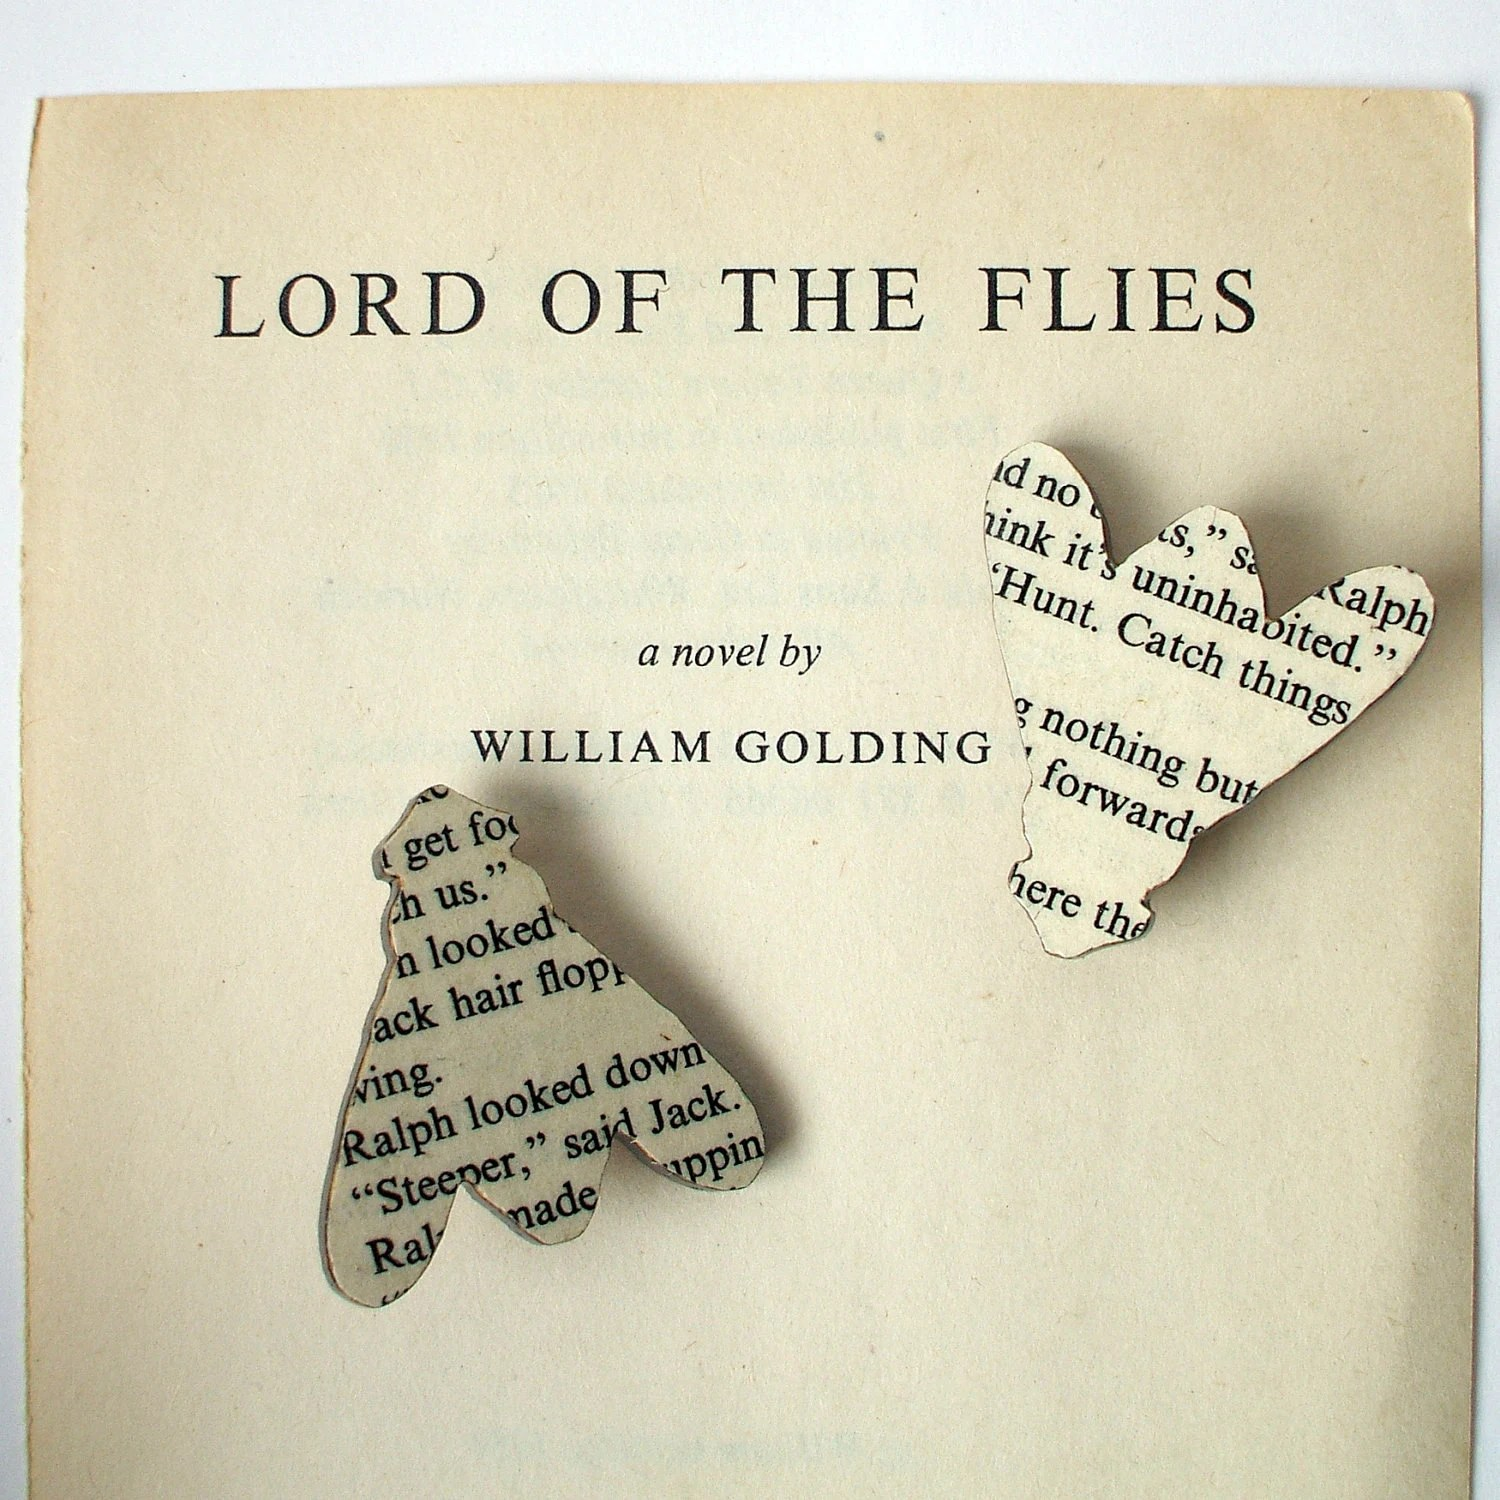 Lord of the Flies - Fly brooch. Classic book brooches made with original pages.